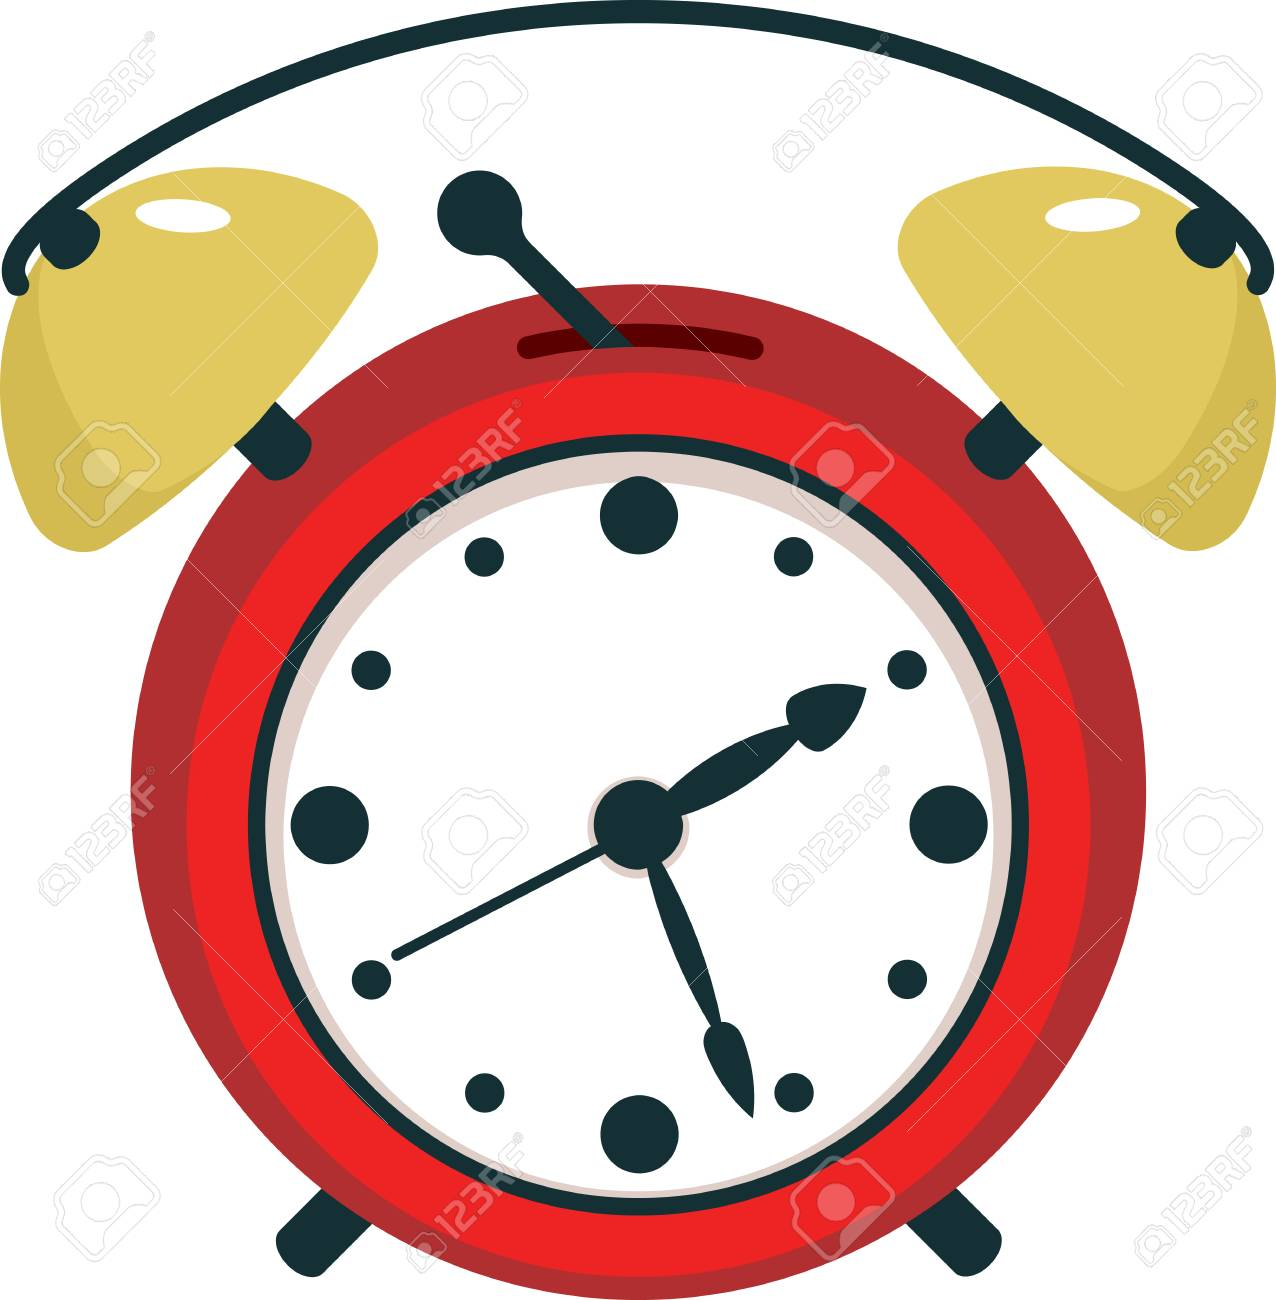 Red Twin Bell Alarm Clock in Flat Style  Isolated on White